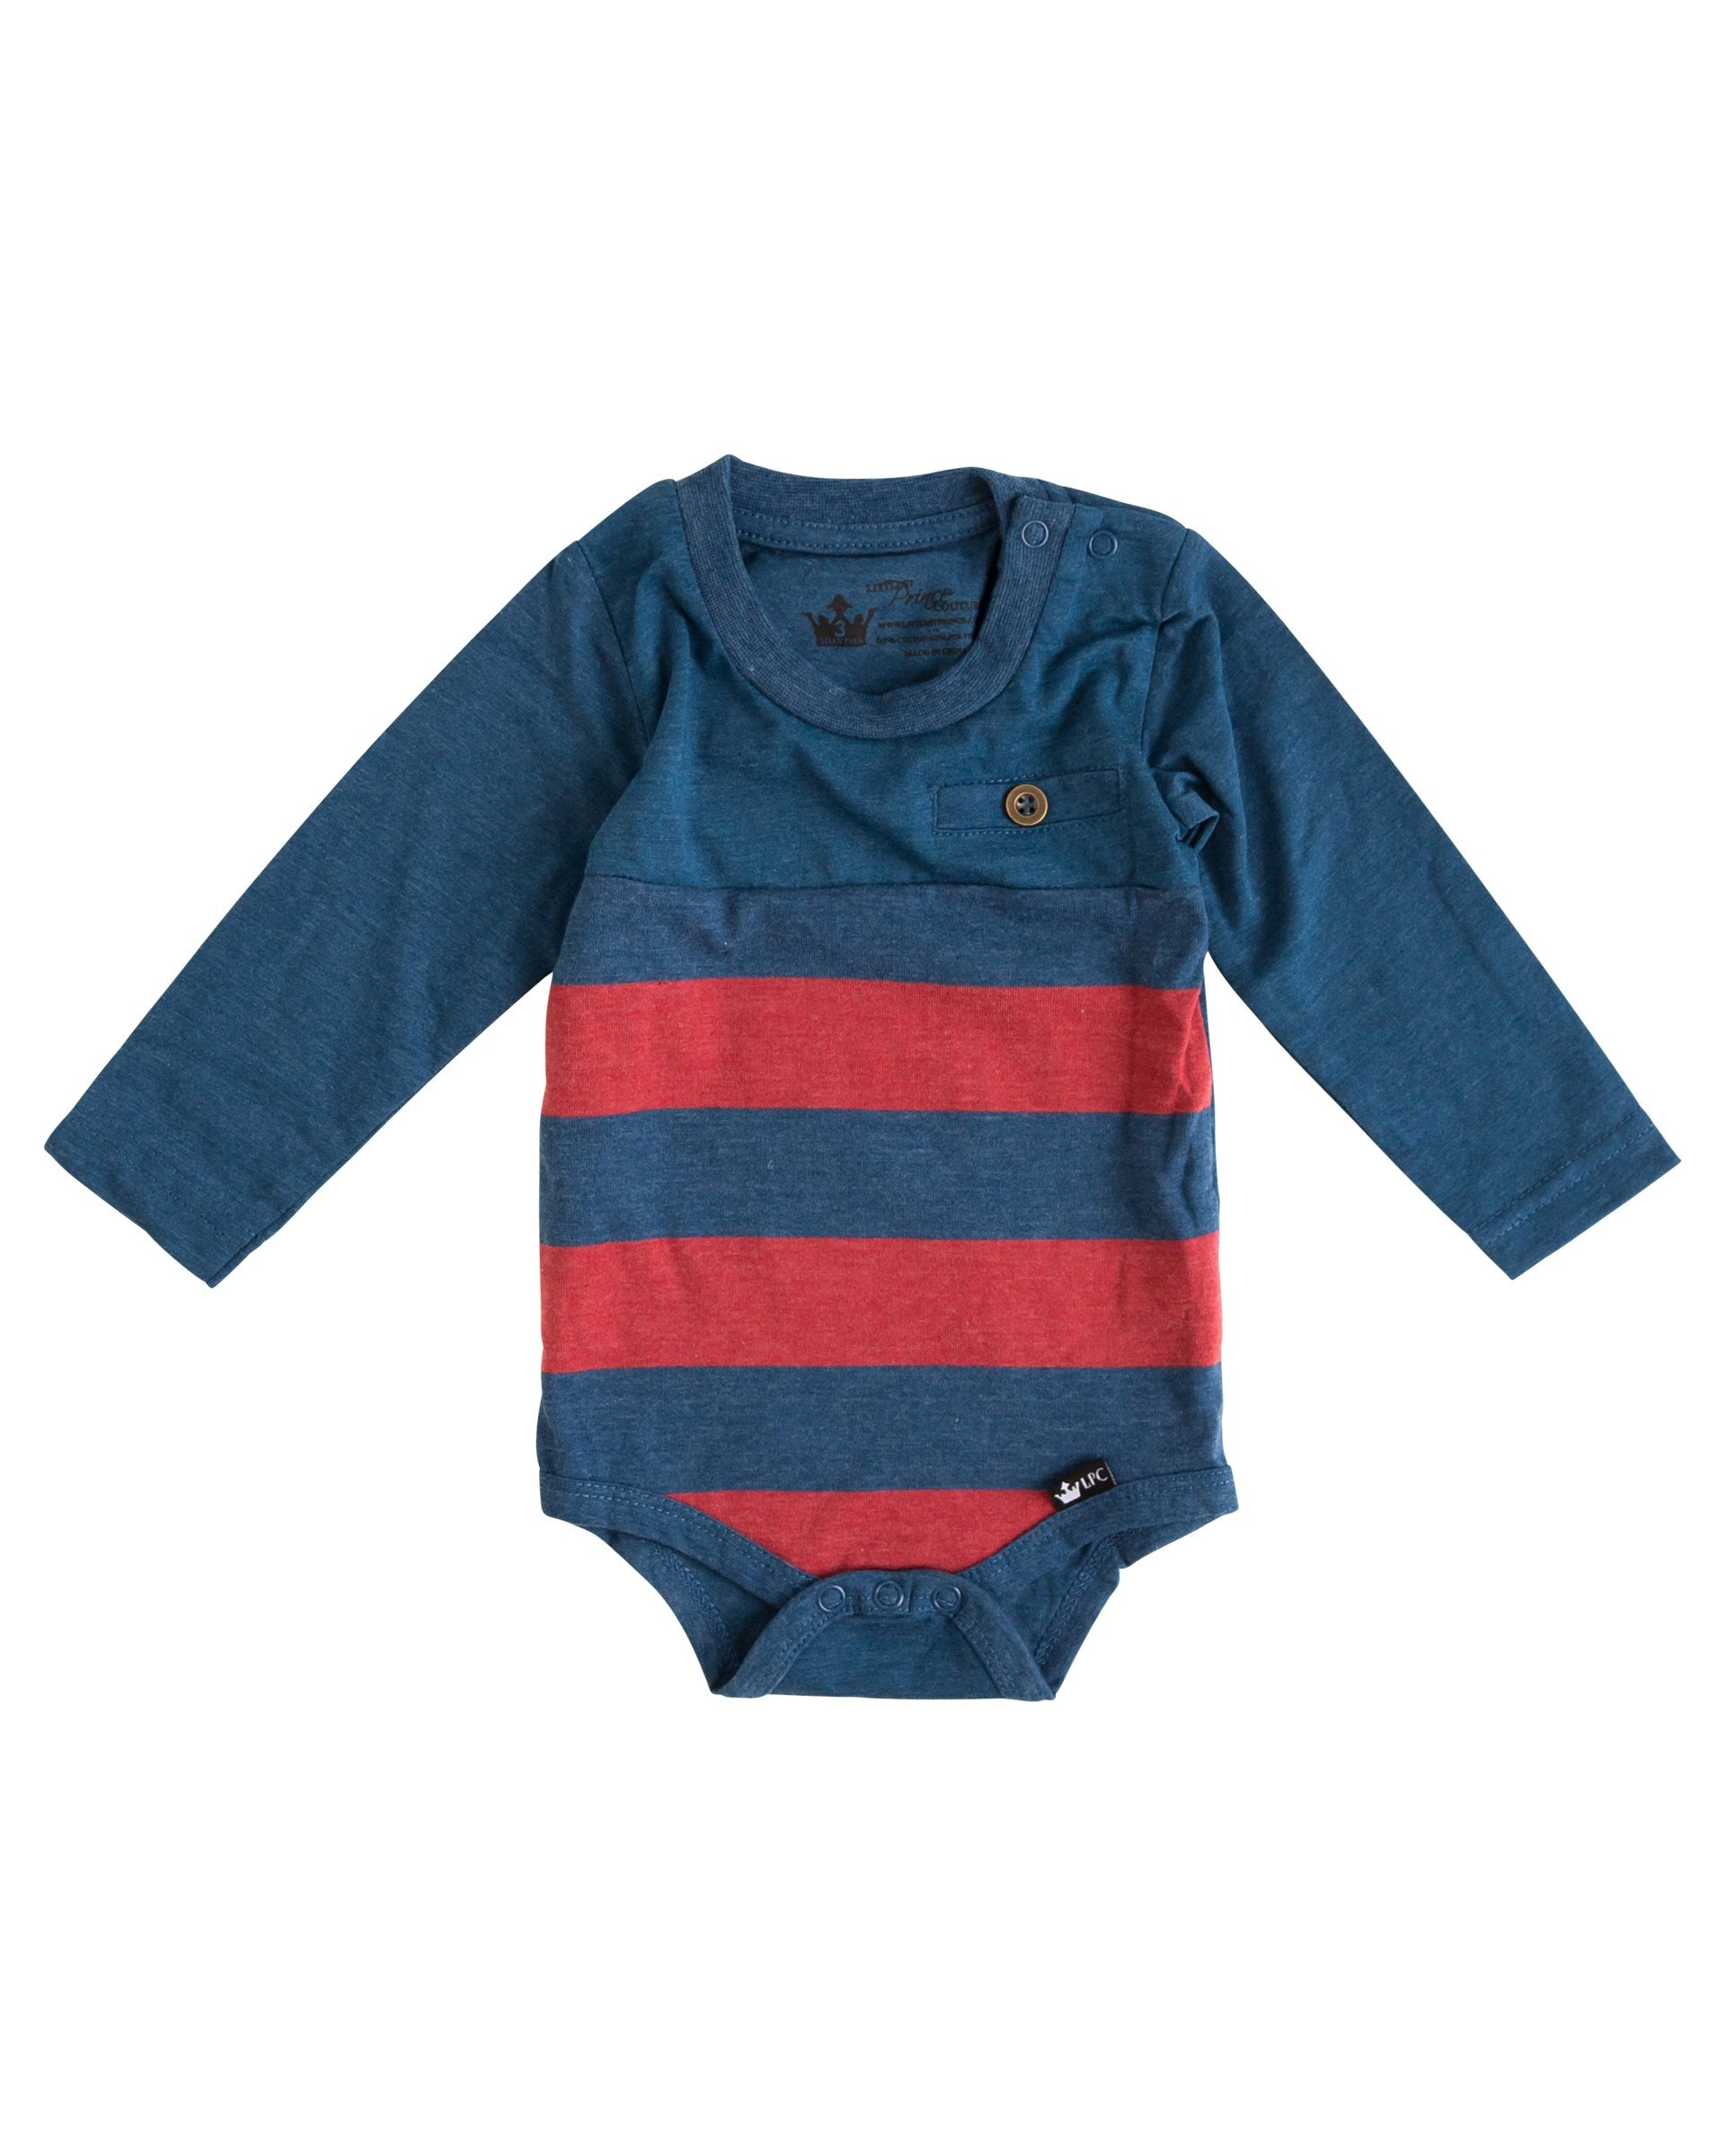 lsbao-rns-front-red-navy-stripe-body-accent-bodysuit.jpg